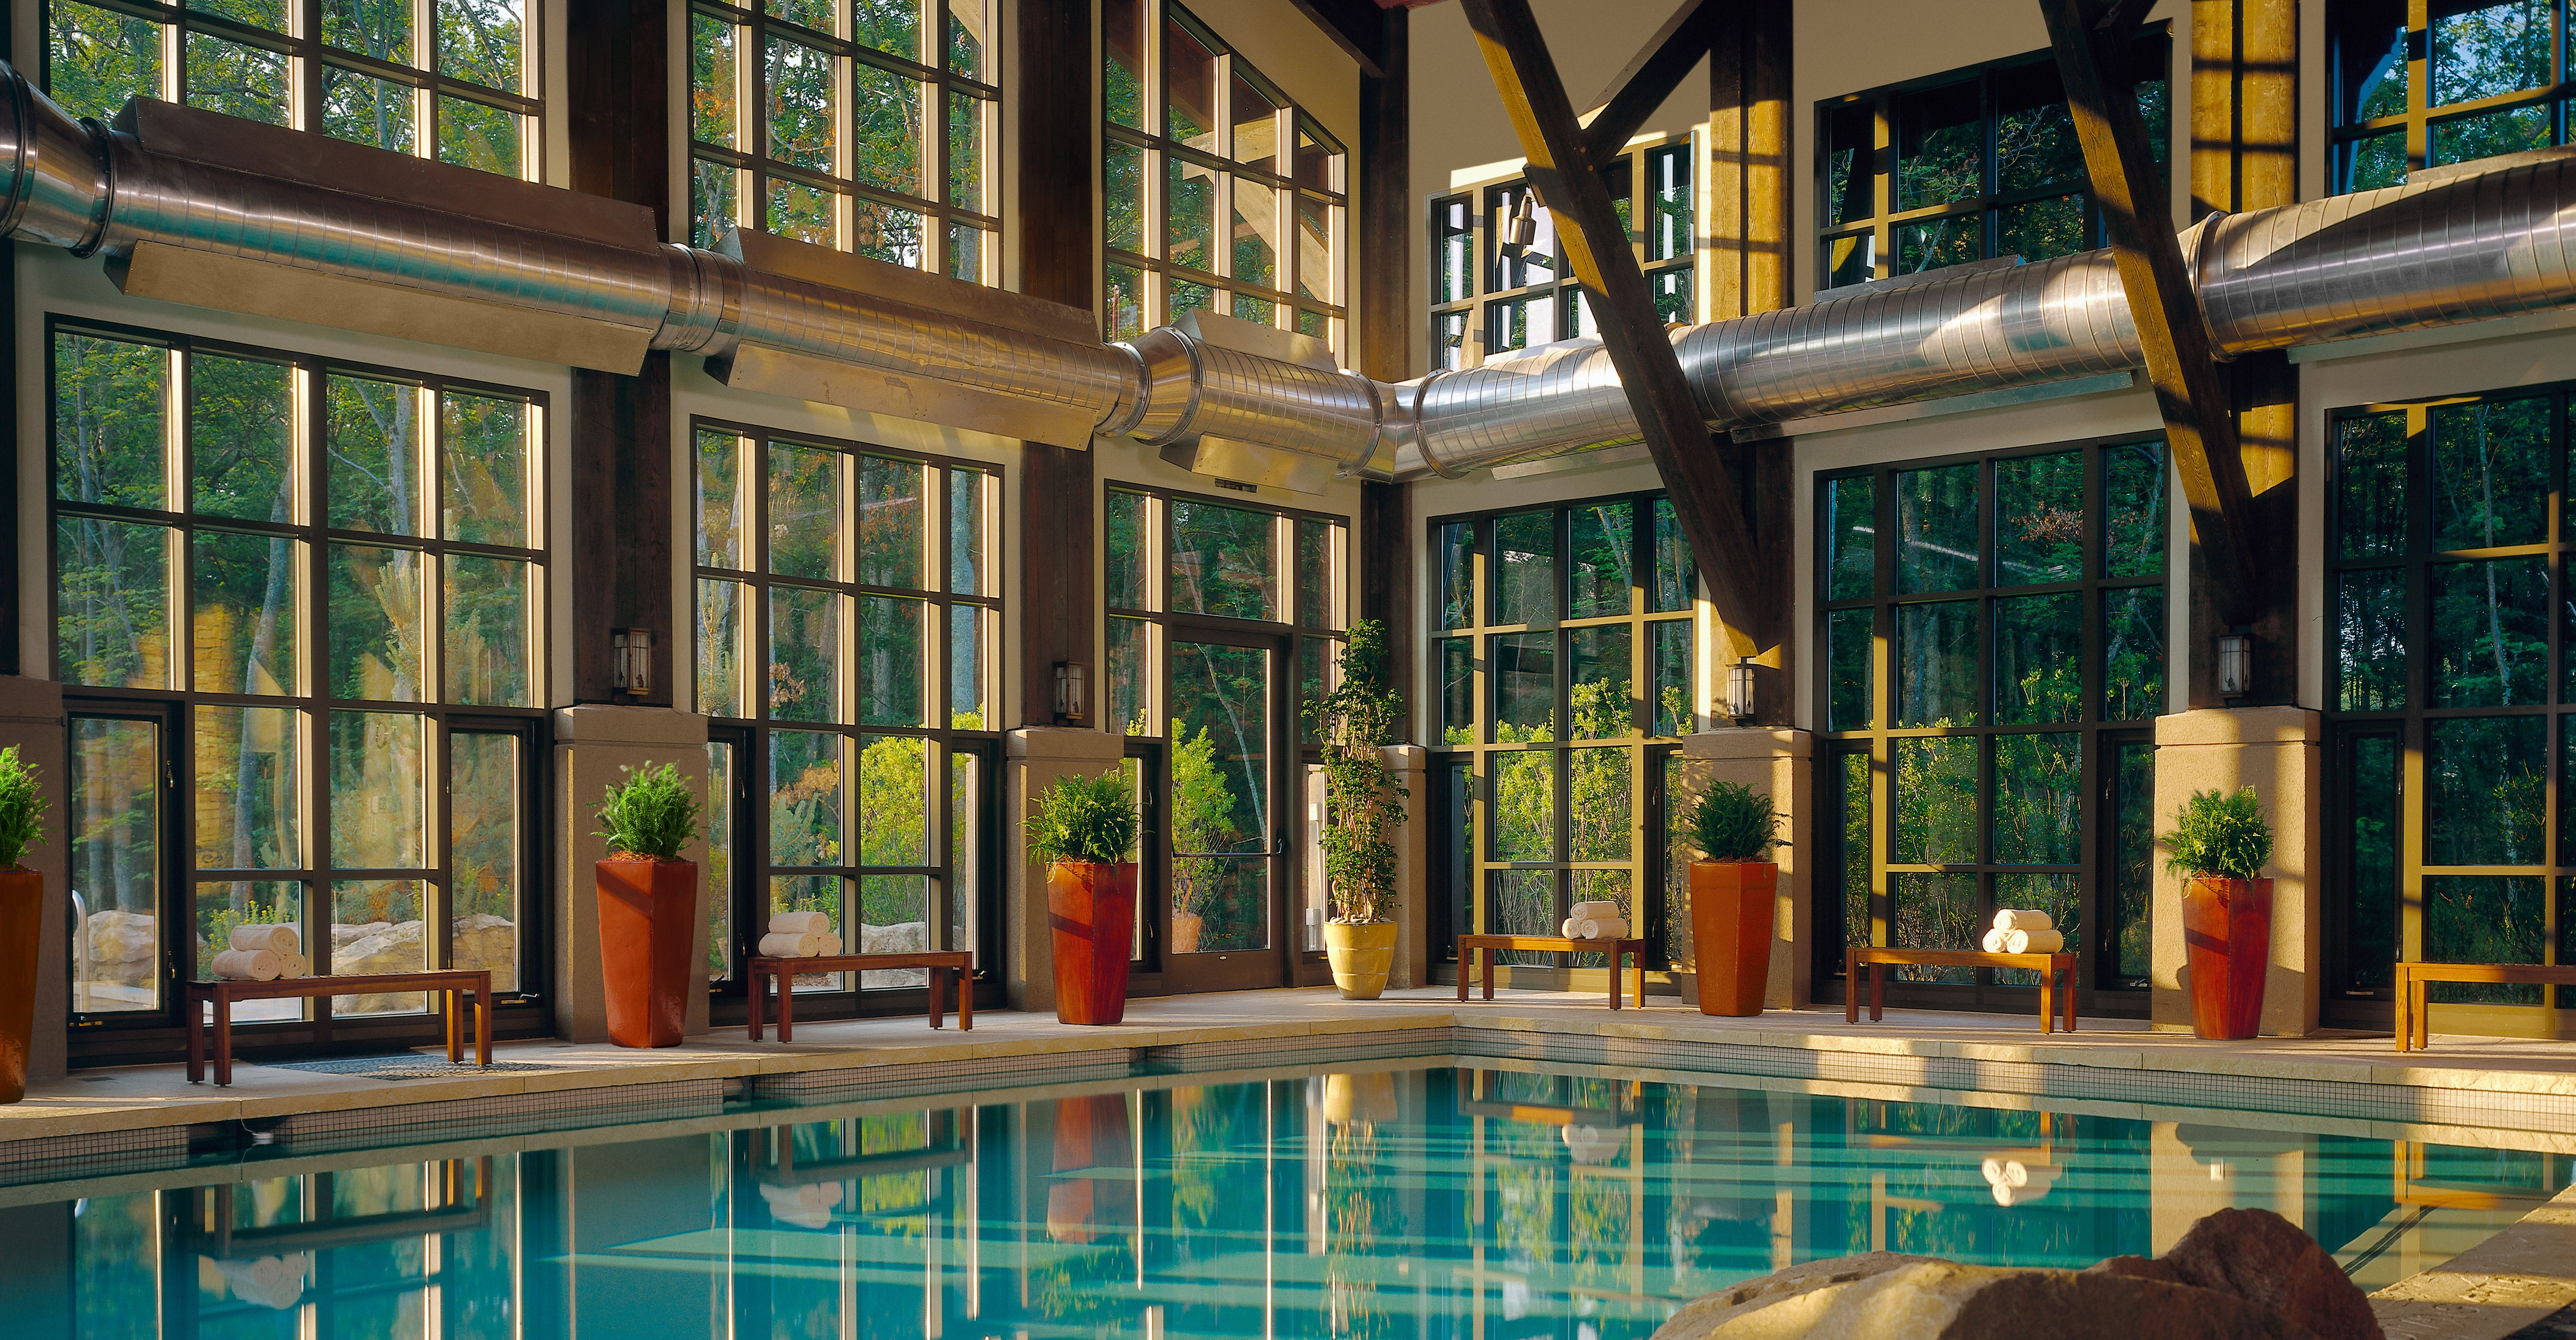 5 Wellness Resorts to Visit in Pennsylvania